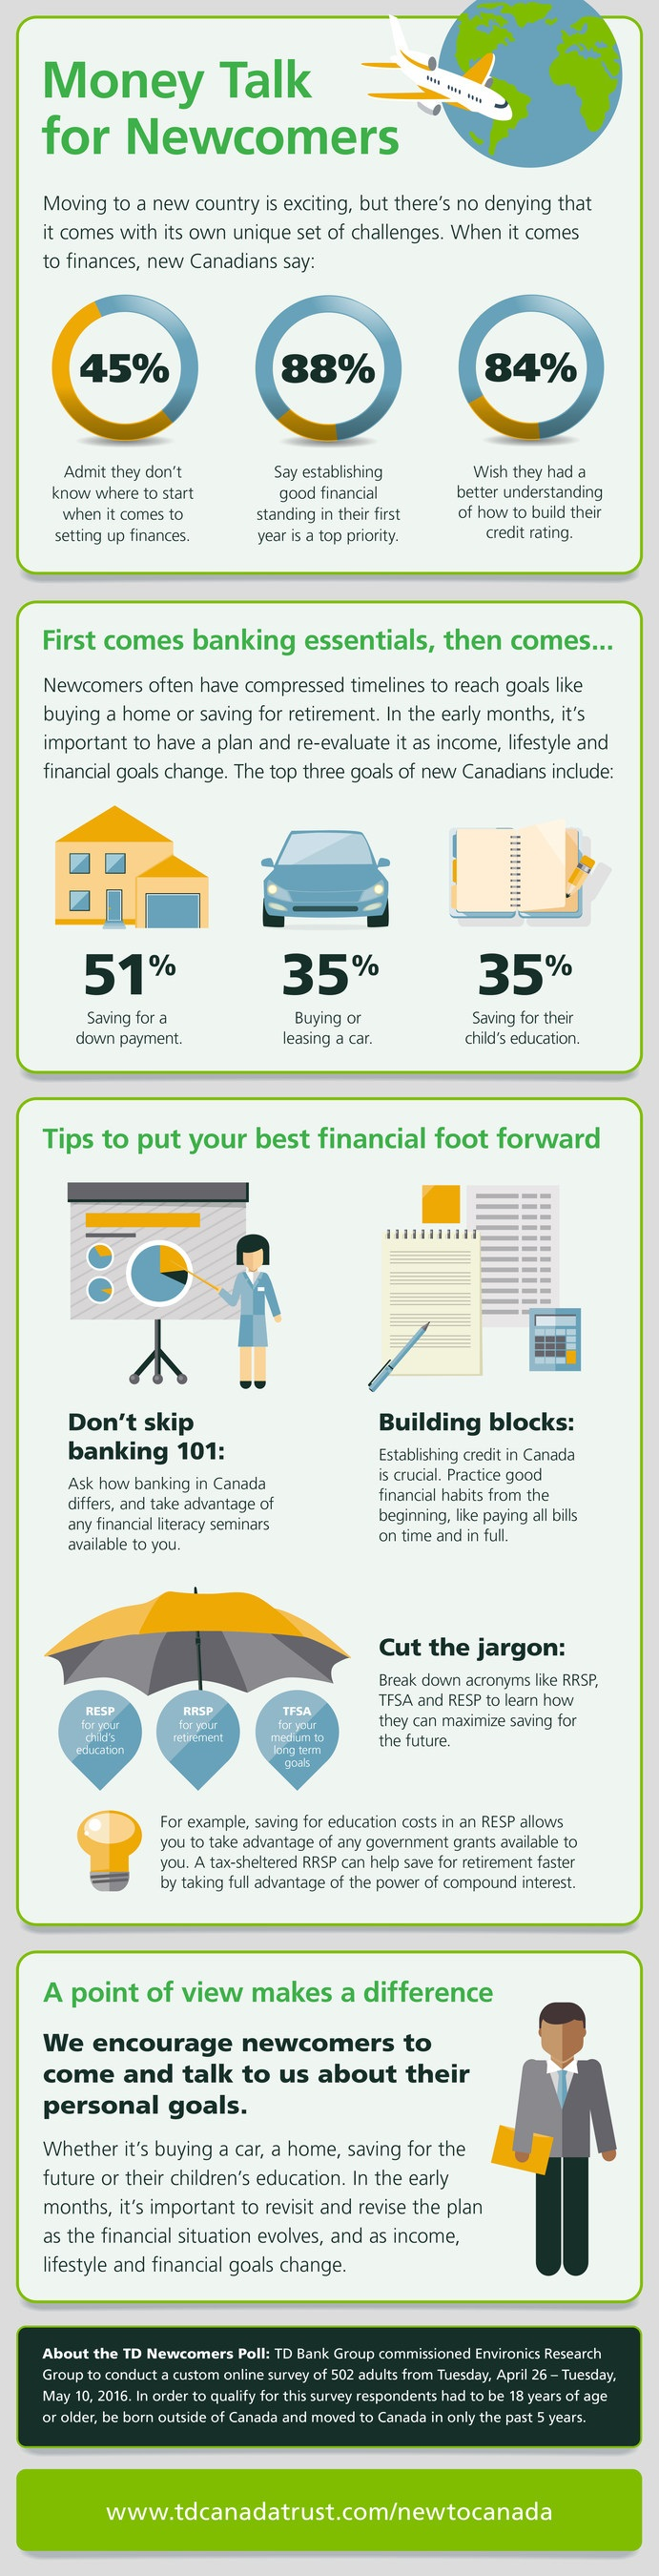 Money Talk for Newcomers (CNW Group/TD Canada Trust)